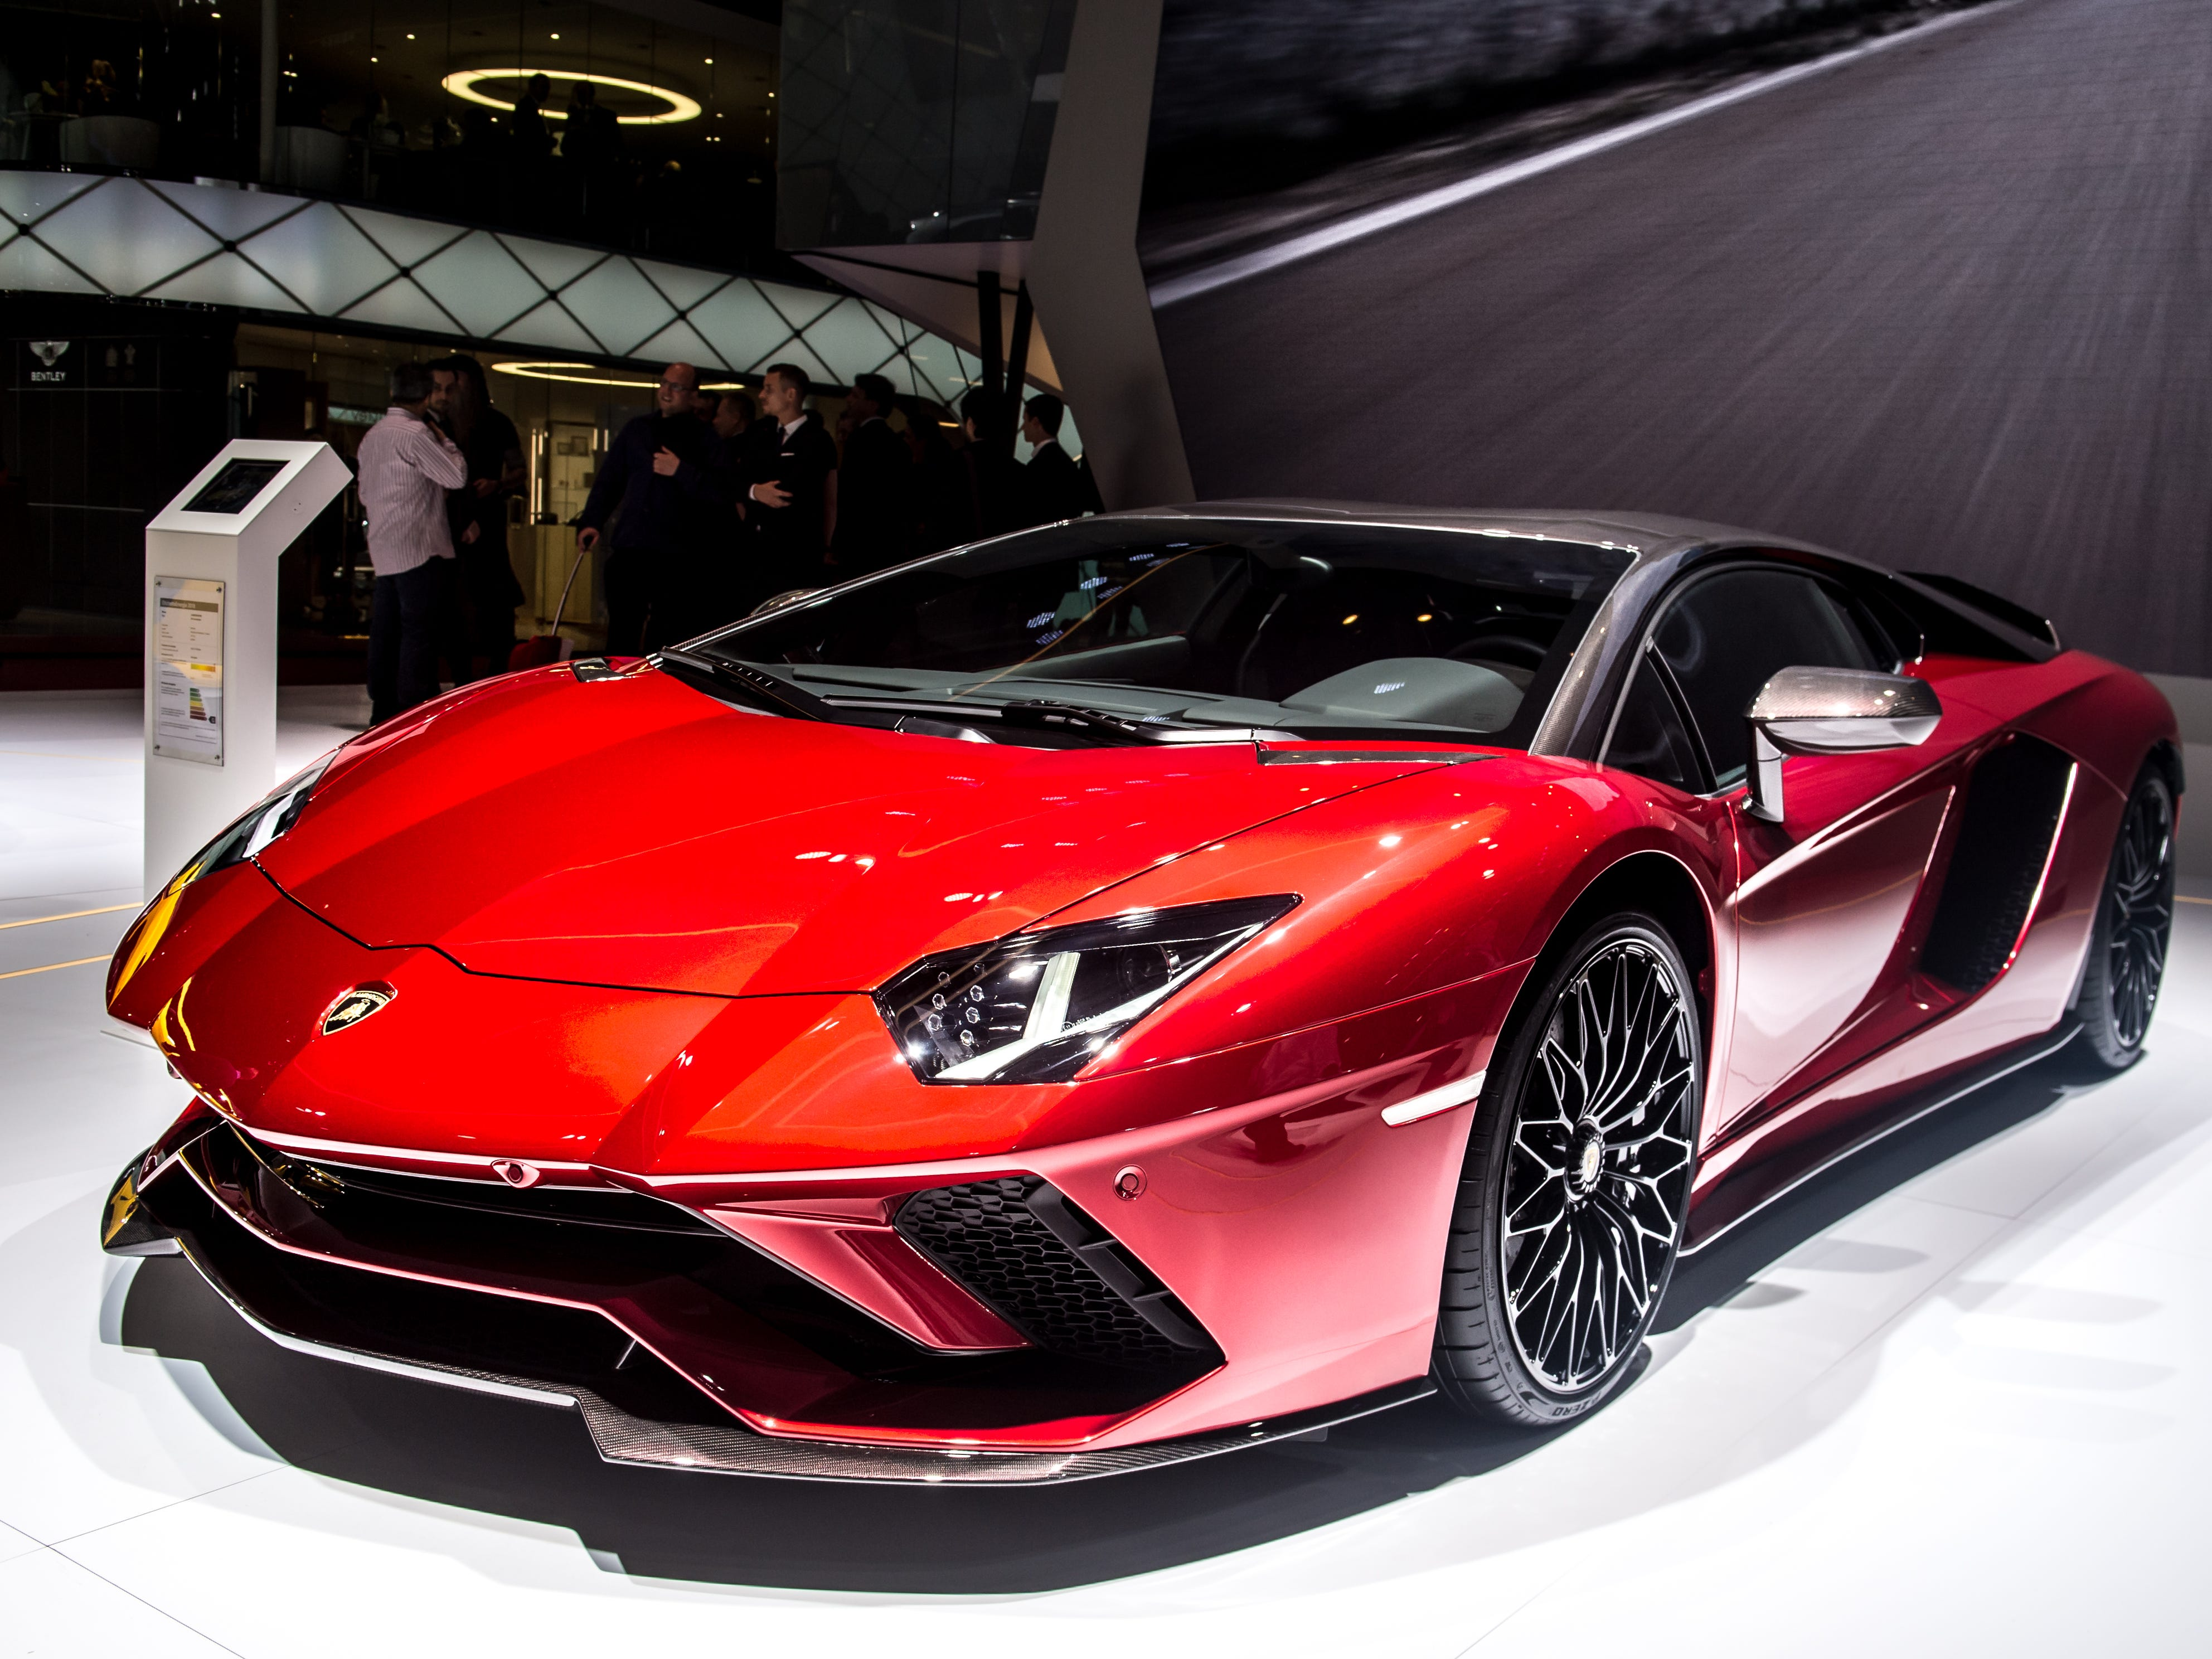 Lamborghini Aventador 834 is displayed at the 88th Geneva International Motor Show on March 6, 2018, in Geneva, Switzerland.